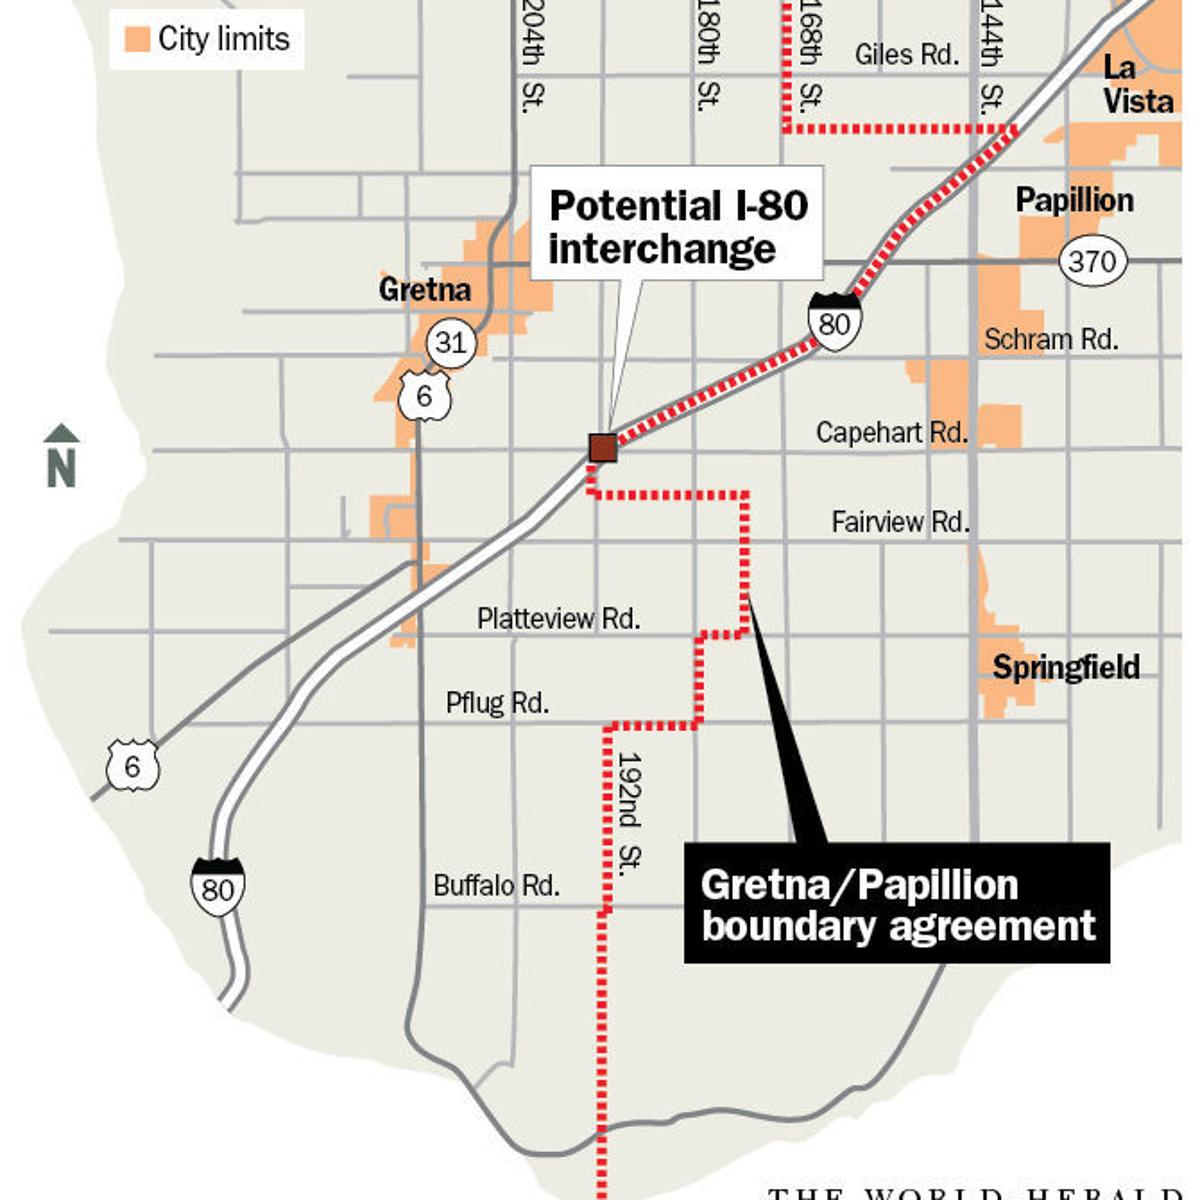 gretna approves agreement to end i-80 boundary dispute but